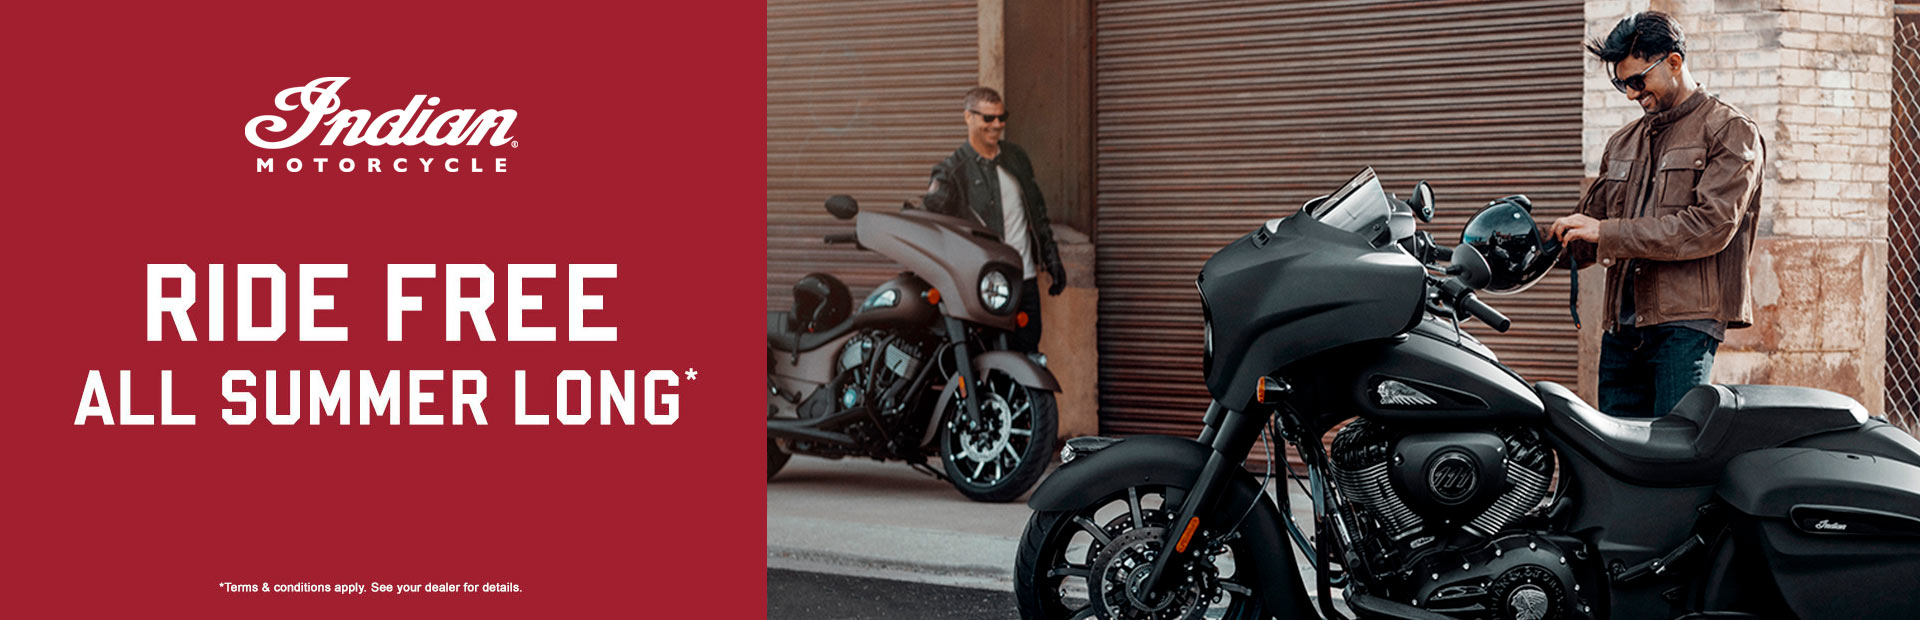 Indian Motorcycle: Ride Free All Summer Long